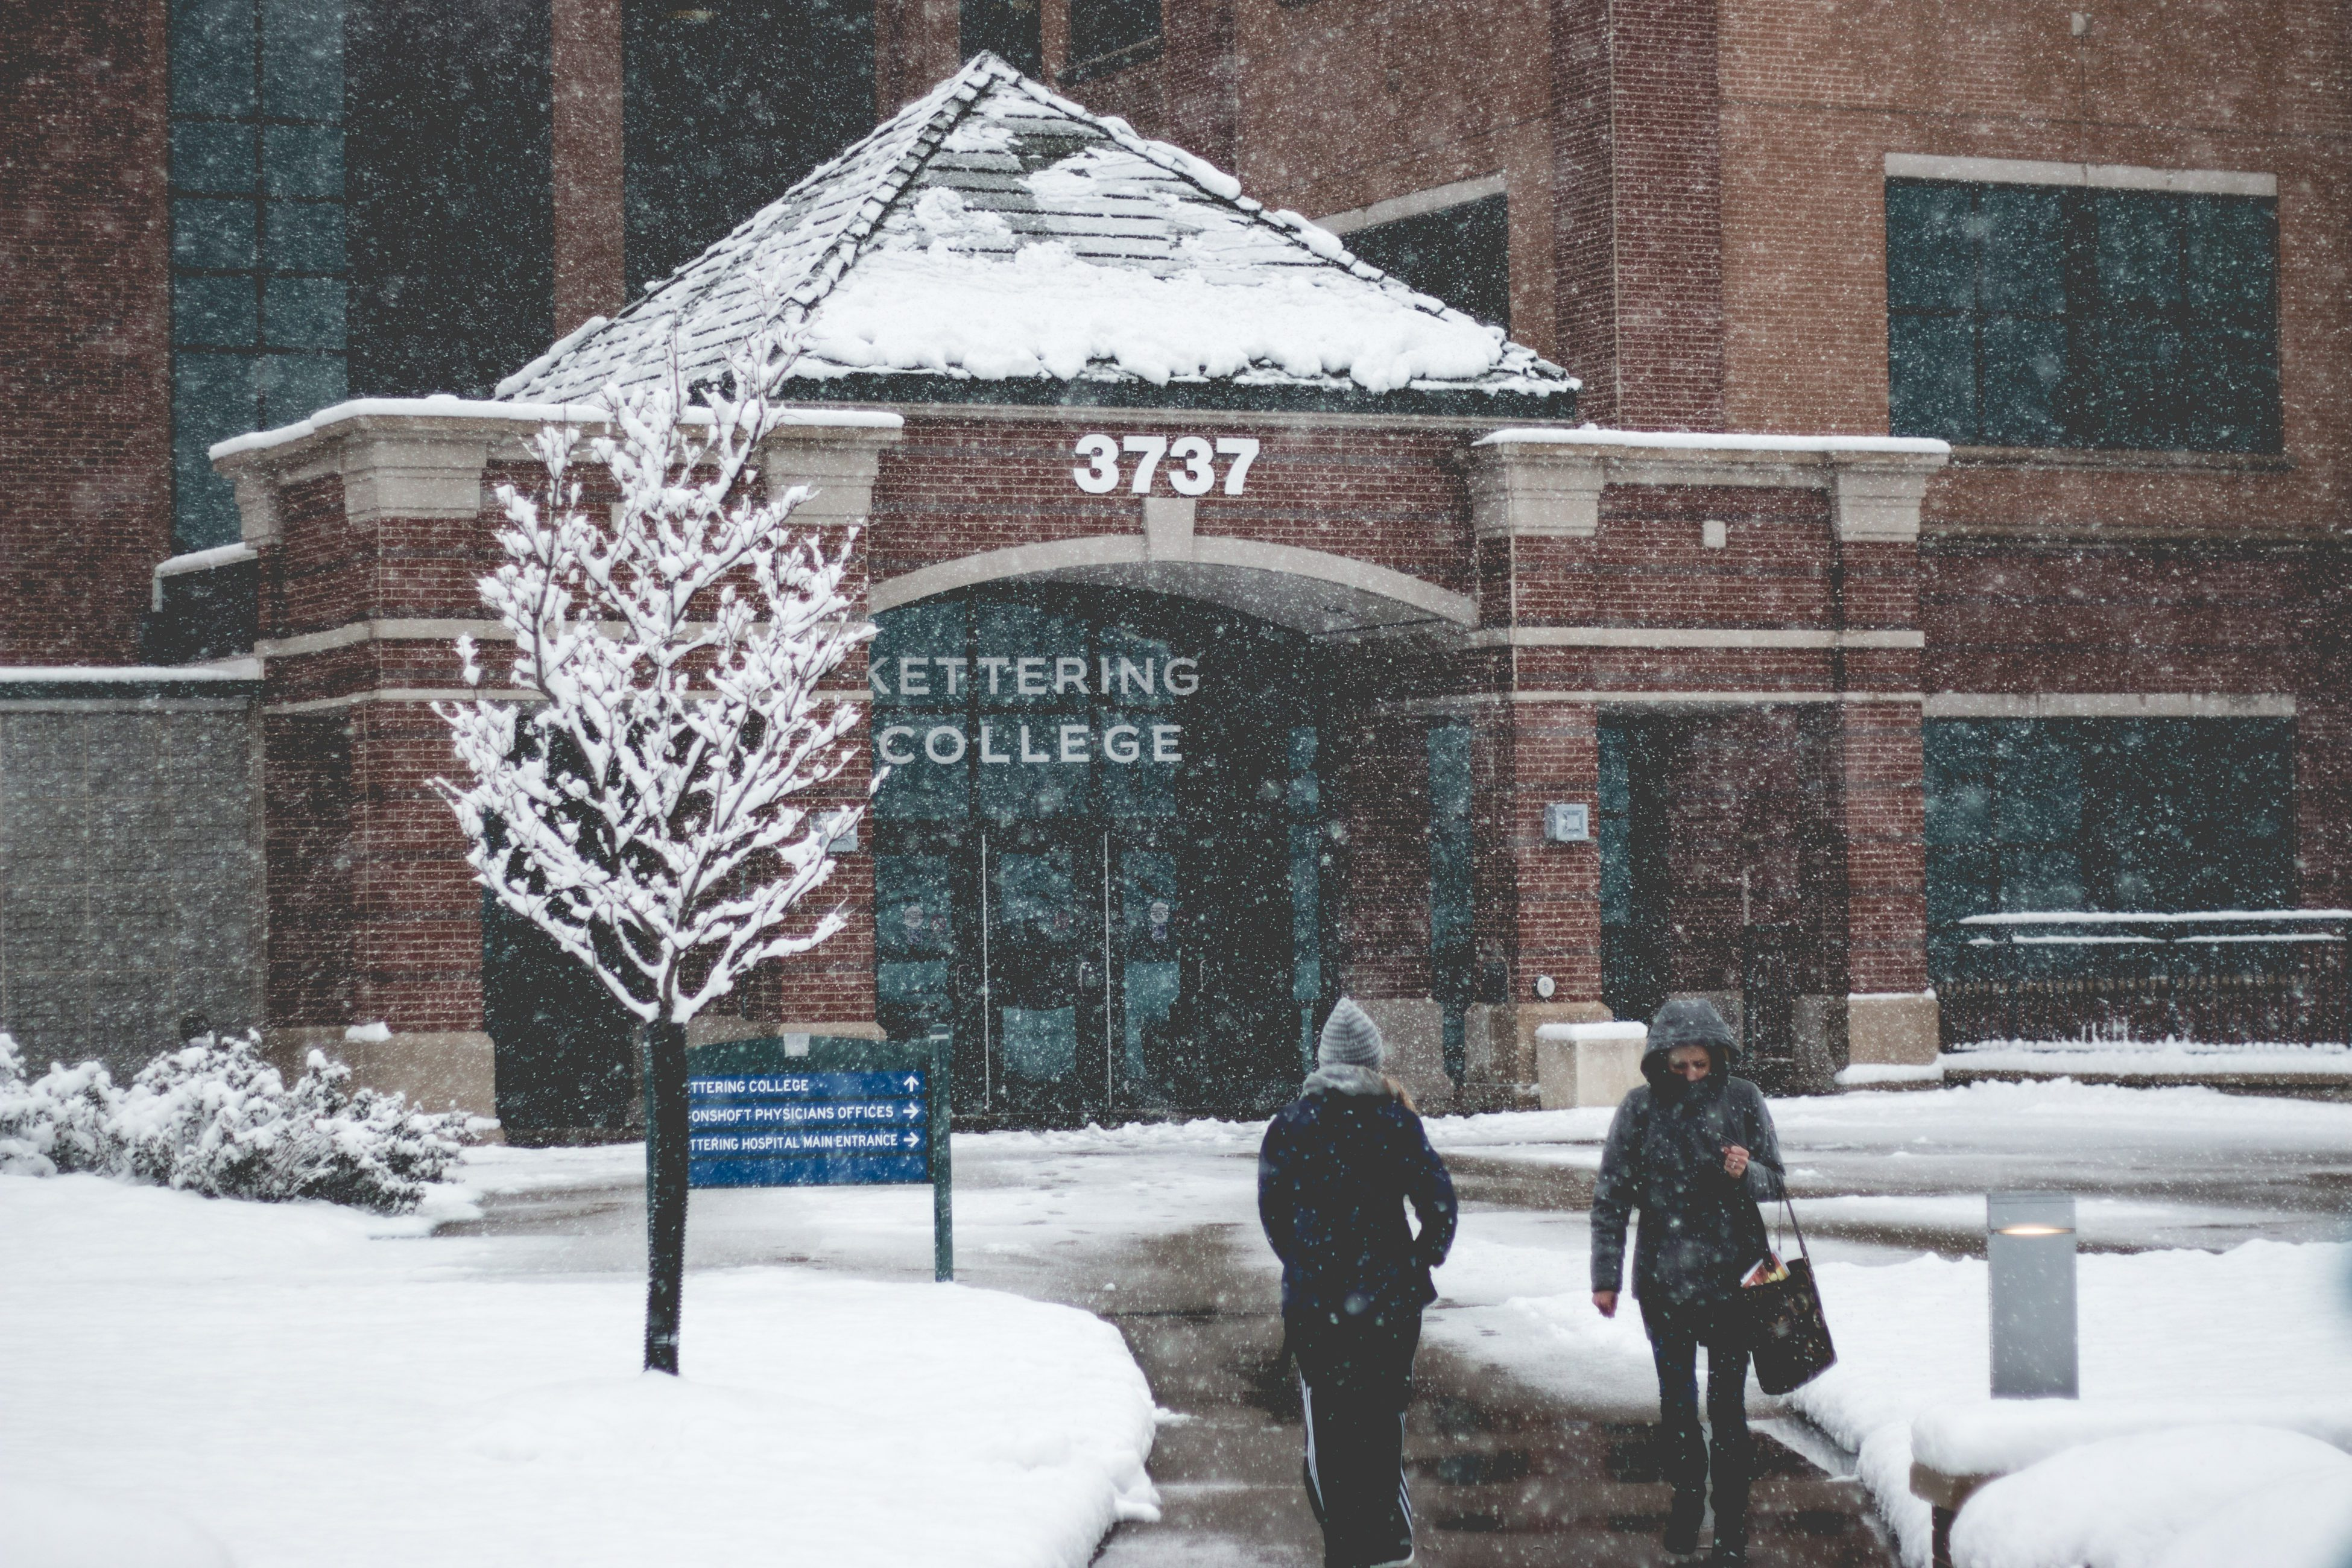 Kettering College in the snow